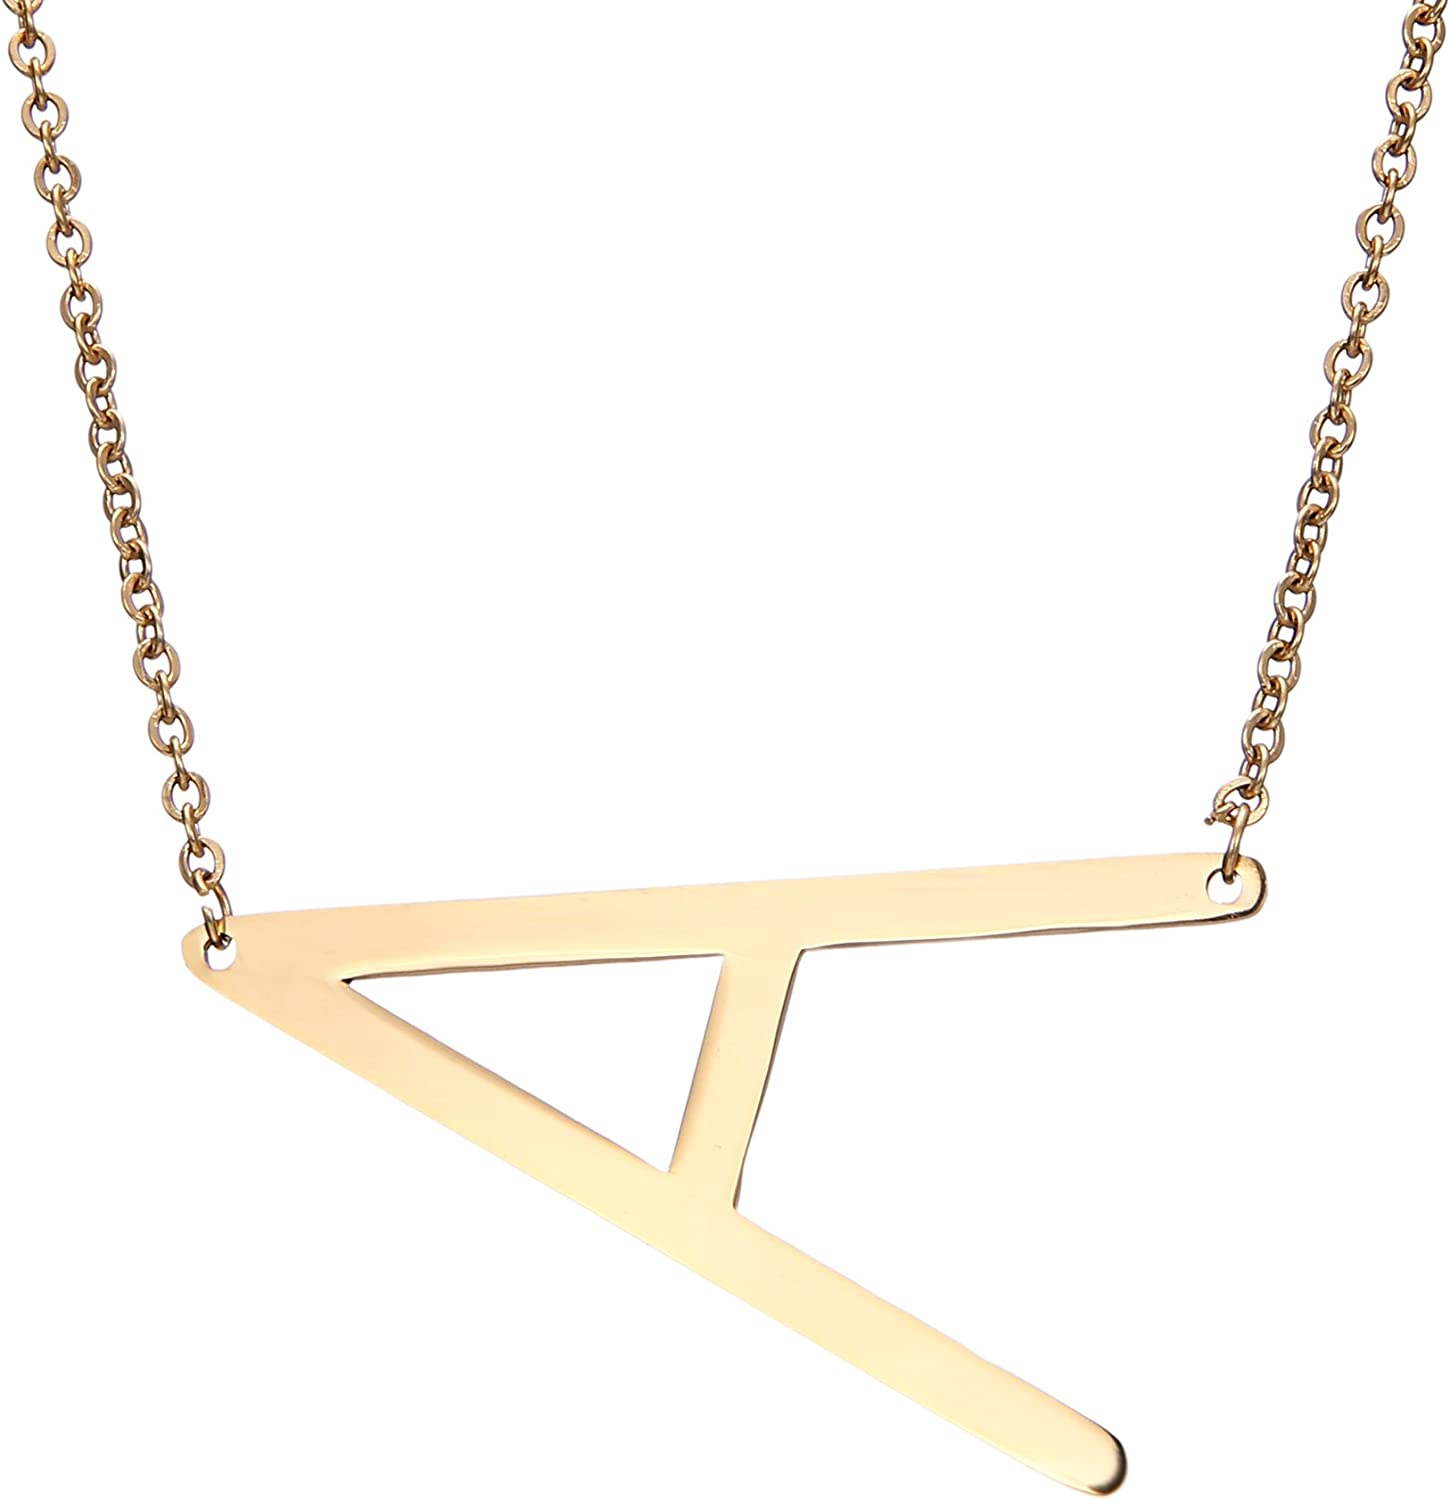 MEMGIFT Big Letter Necklace Stainless Steel Initial Pendant Best Friends Jewelry for Girls Women Her Wedding Birthday Christmas